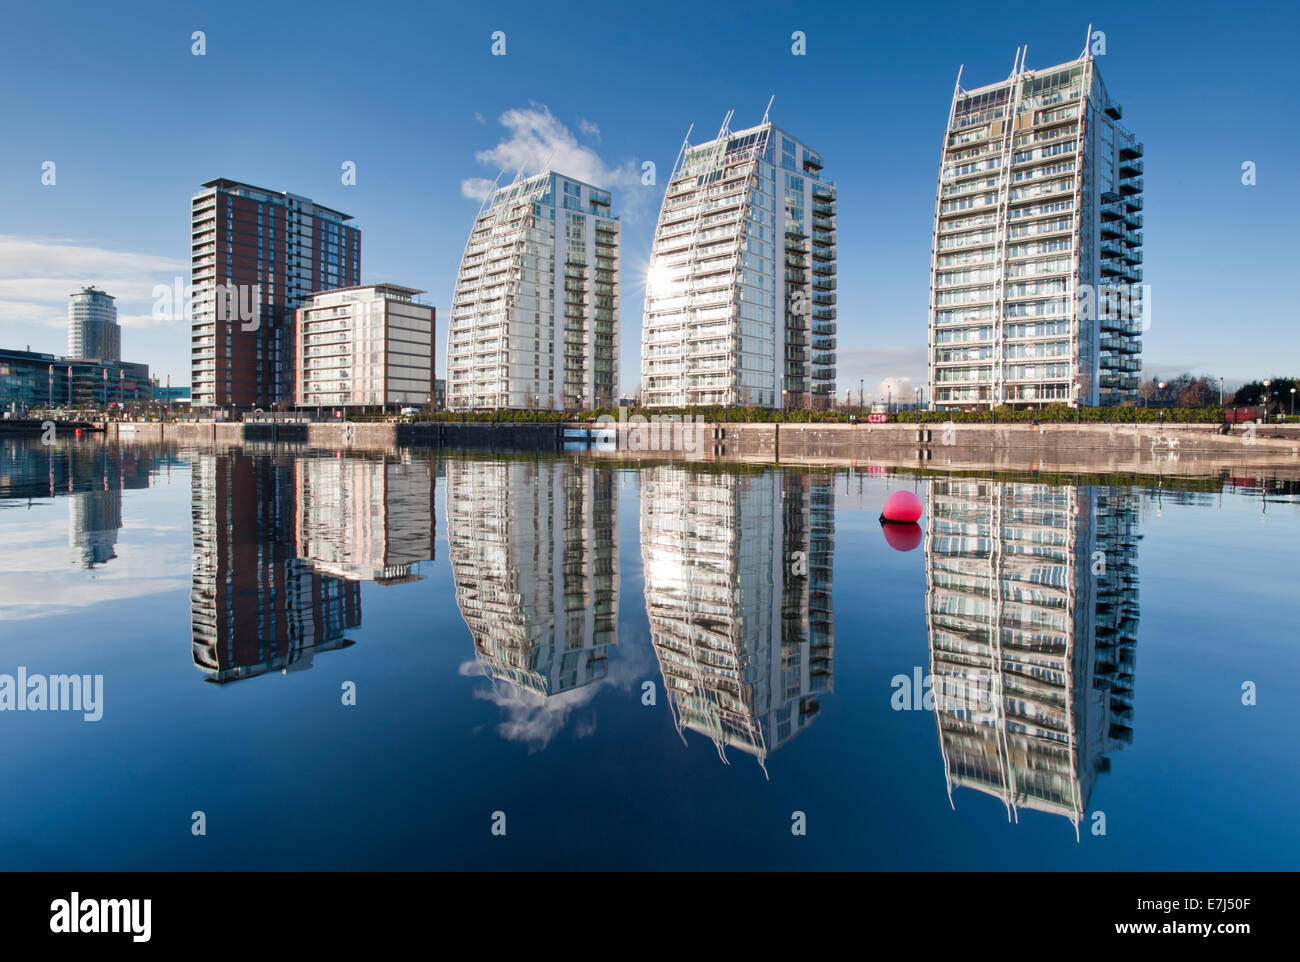 The NV Apartments Viewed Across Huron Basin, Salford Quays, Greater Manchester - Stock Image